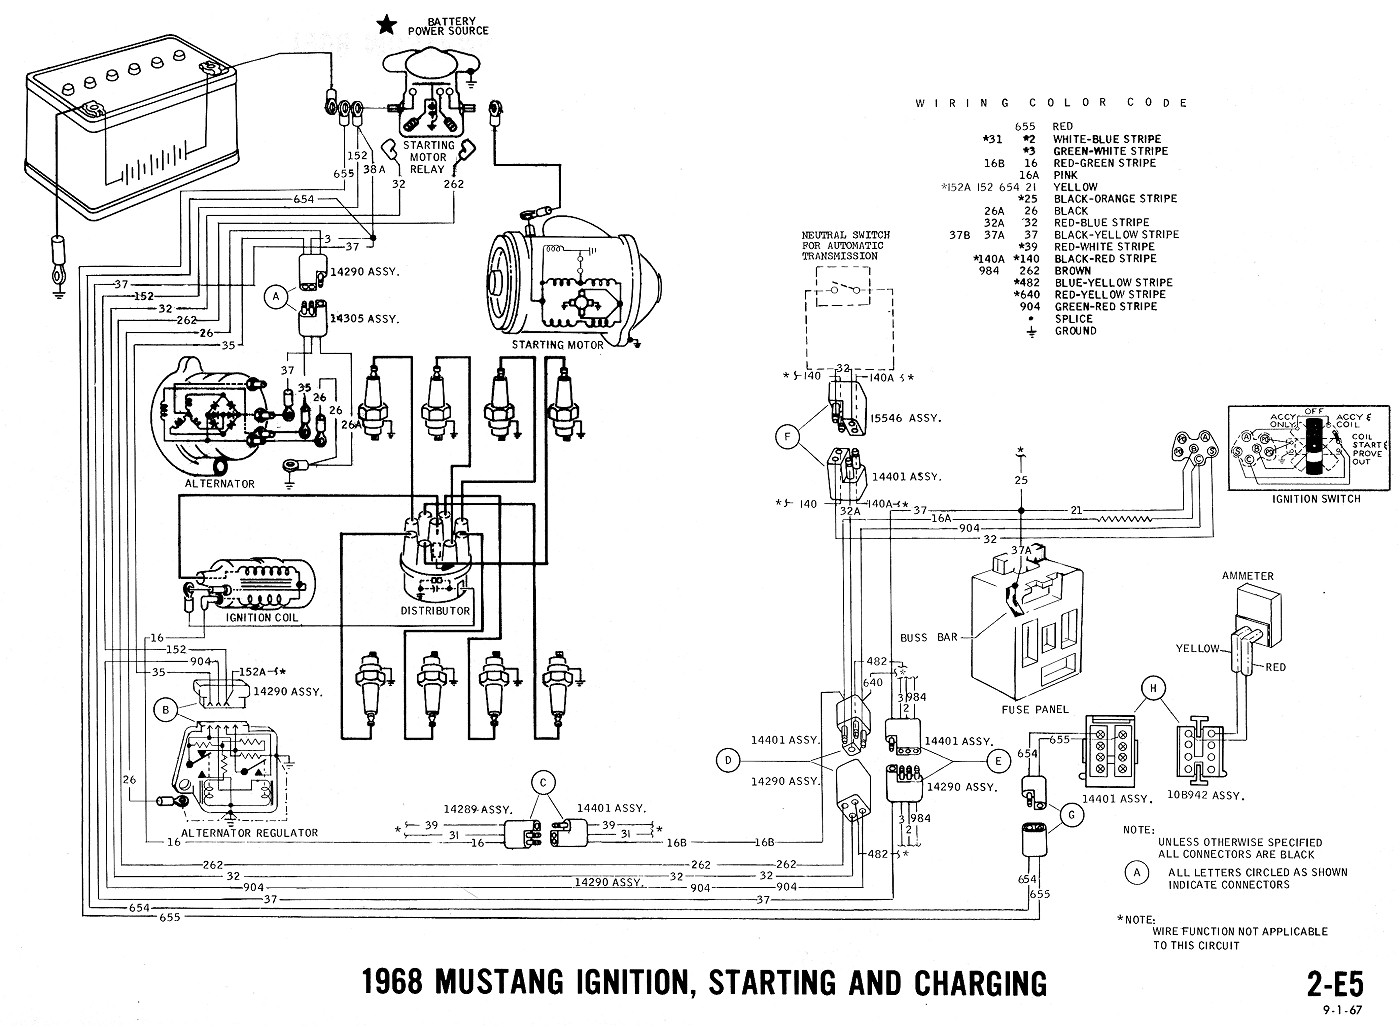 Wisconsin Vh4d Wiring Diagram - Fld 120 Fuse Box Location -  vw-t5.bmw-in-e46.jeanjaures37.fr | Wisconsin Wiring Diagrams |  | Wiring Diagram Resource